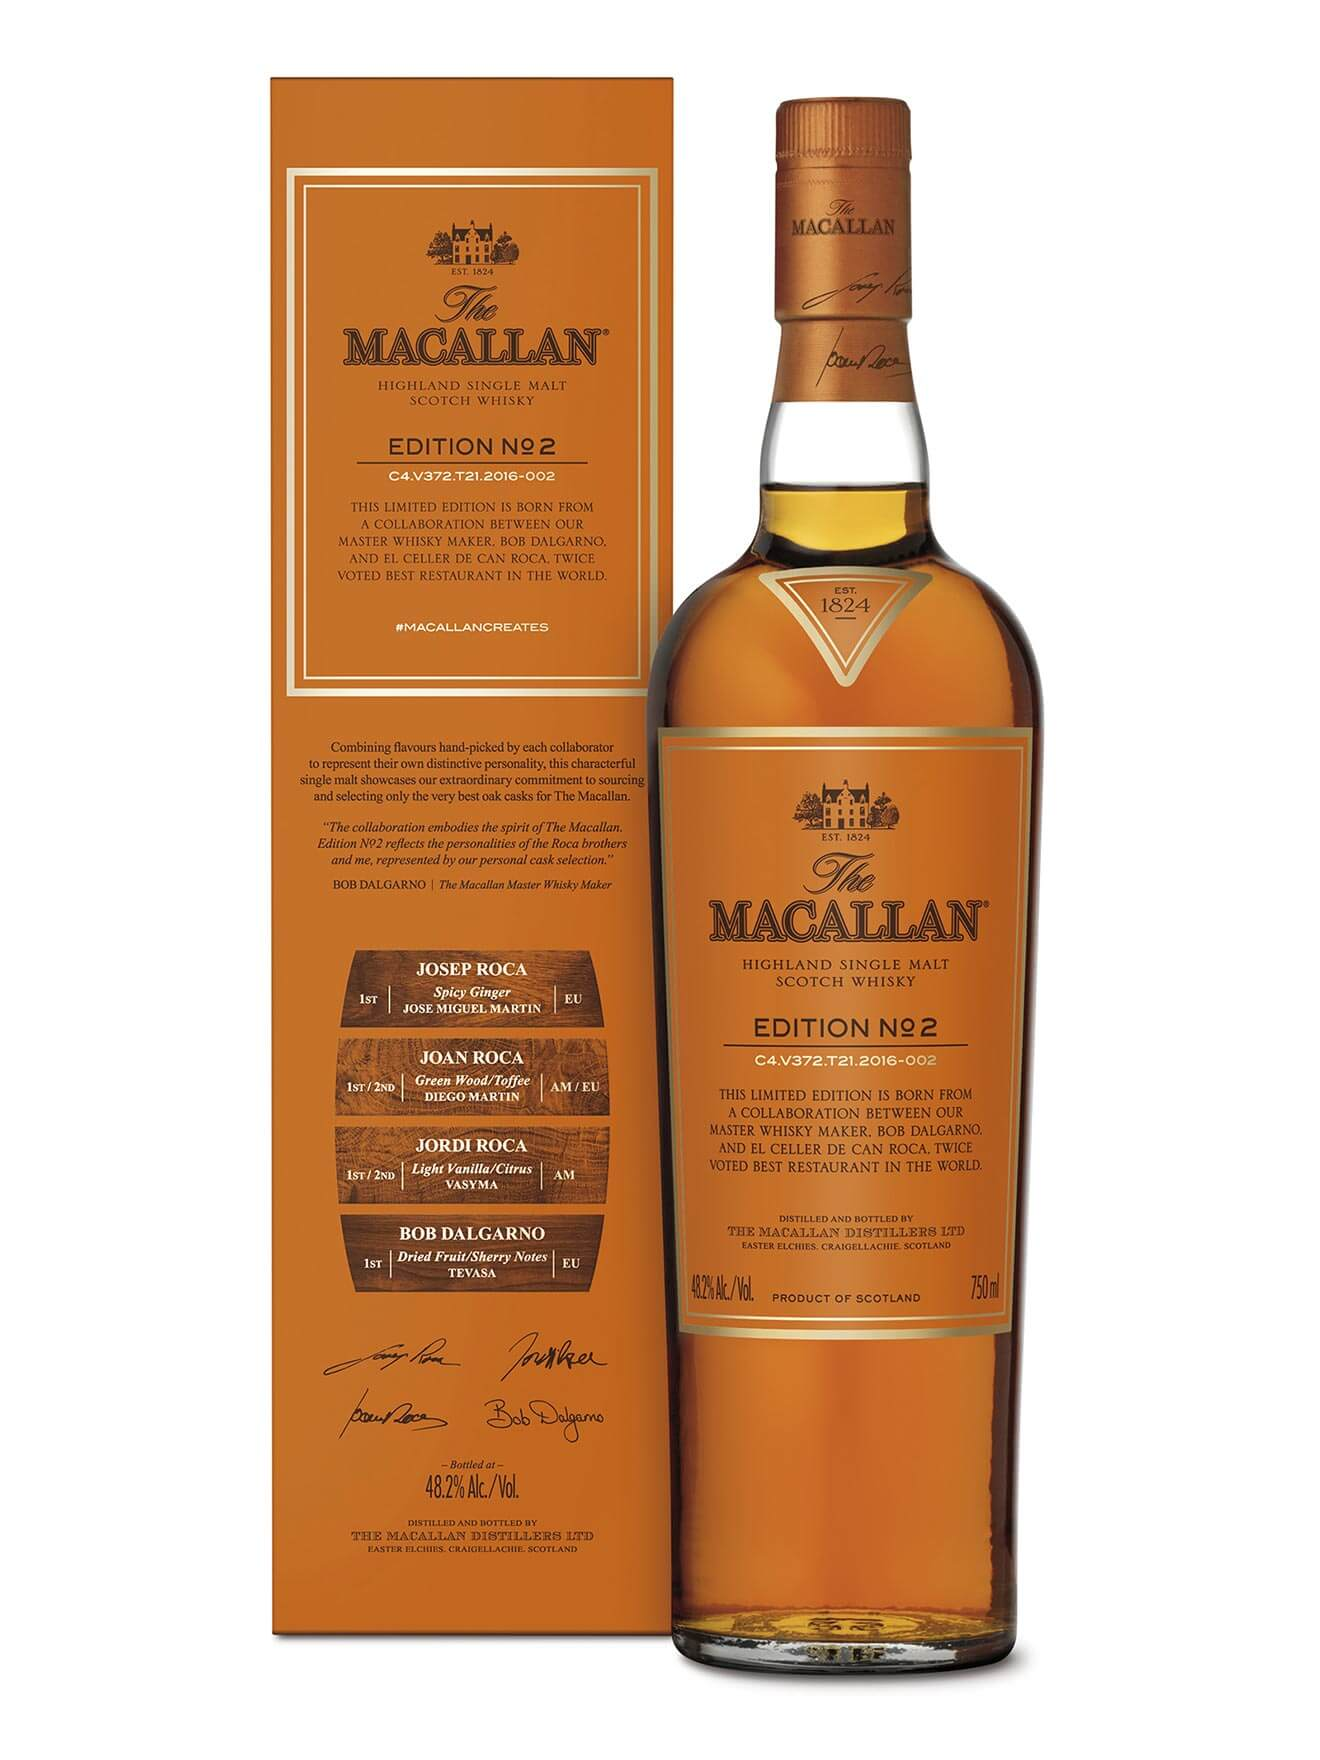 The Macallan Reveals Edition No. 2, bottle and packaging